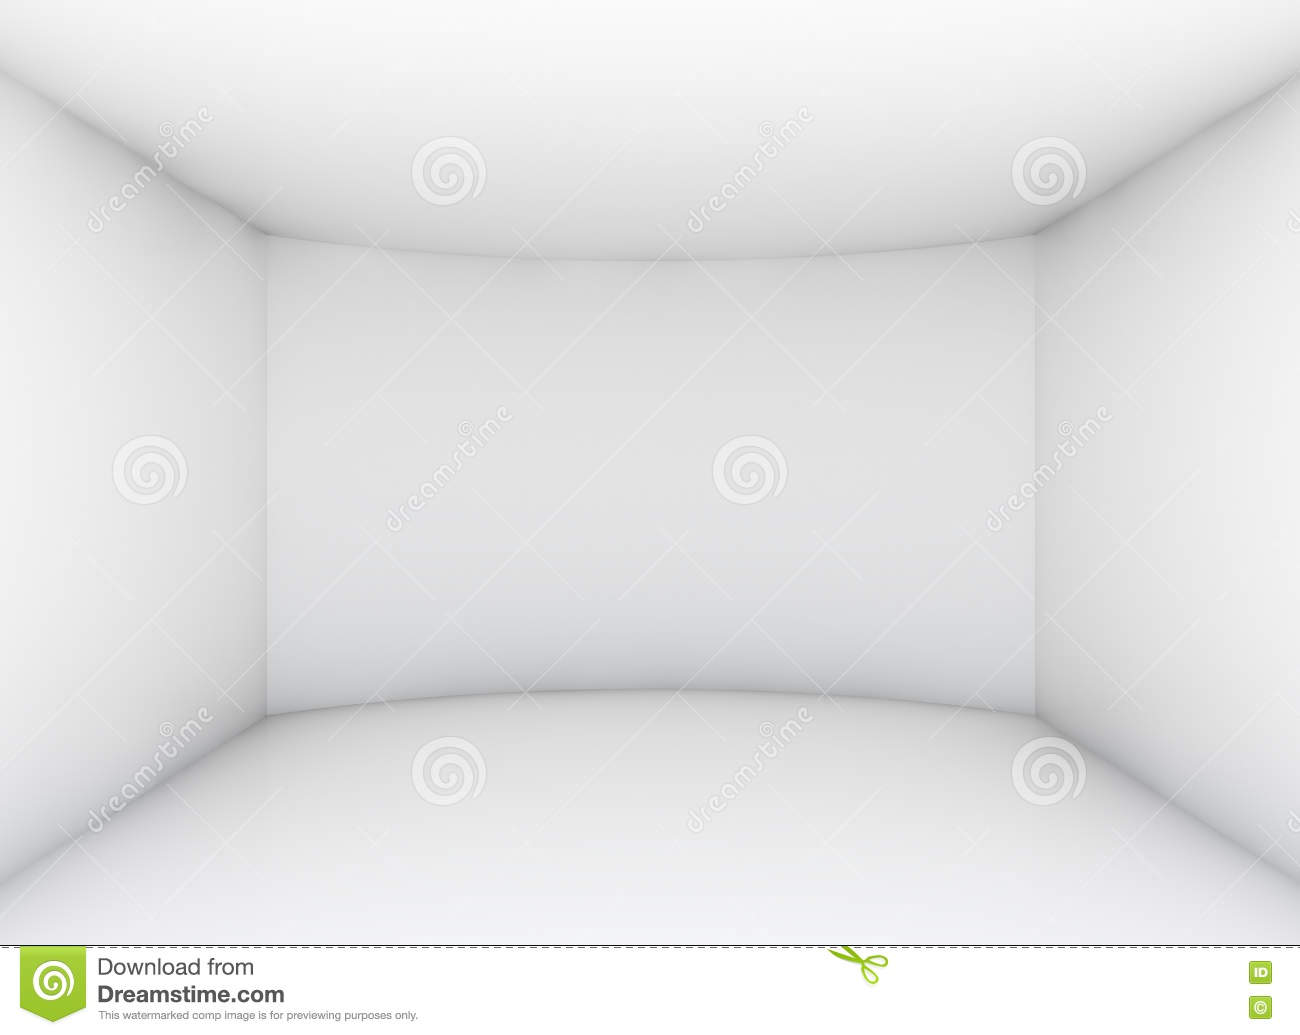 Empty Clean Room For Exhibition Product Stock Photo - Image: 71573300